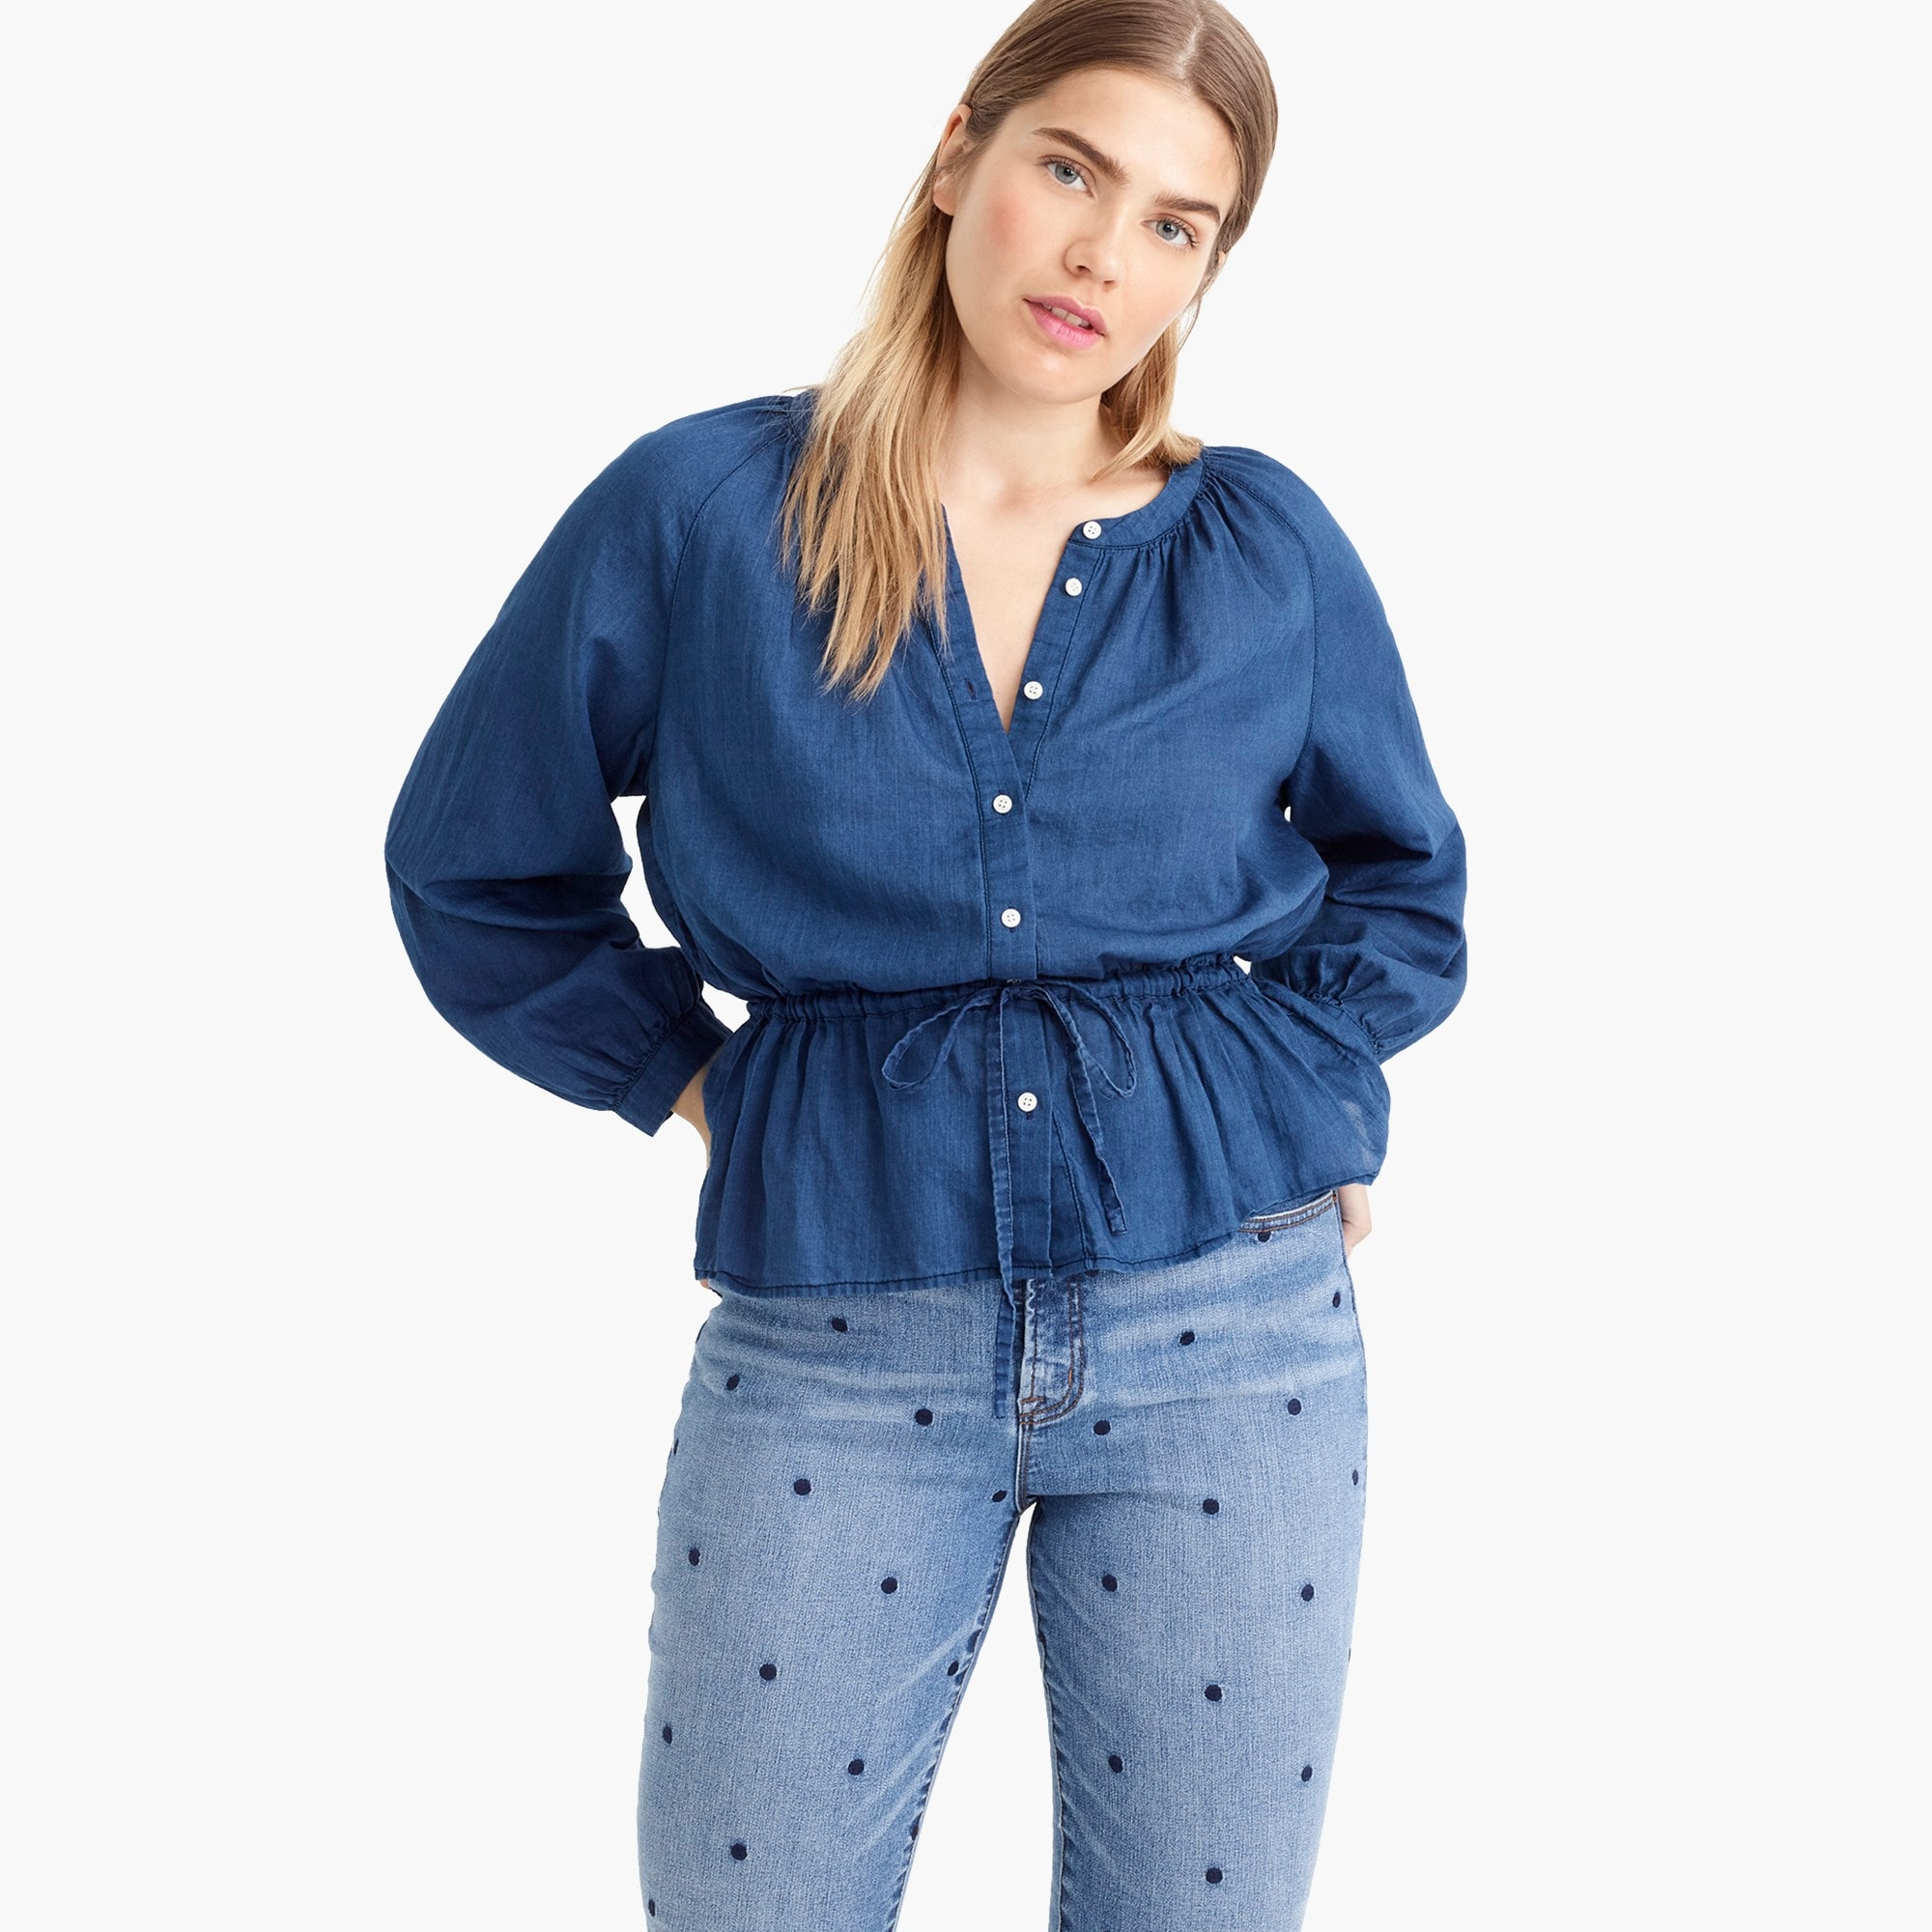 Image 1 for Tall tie-waist top in indigo gauze